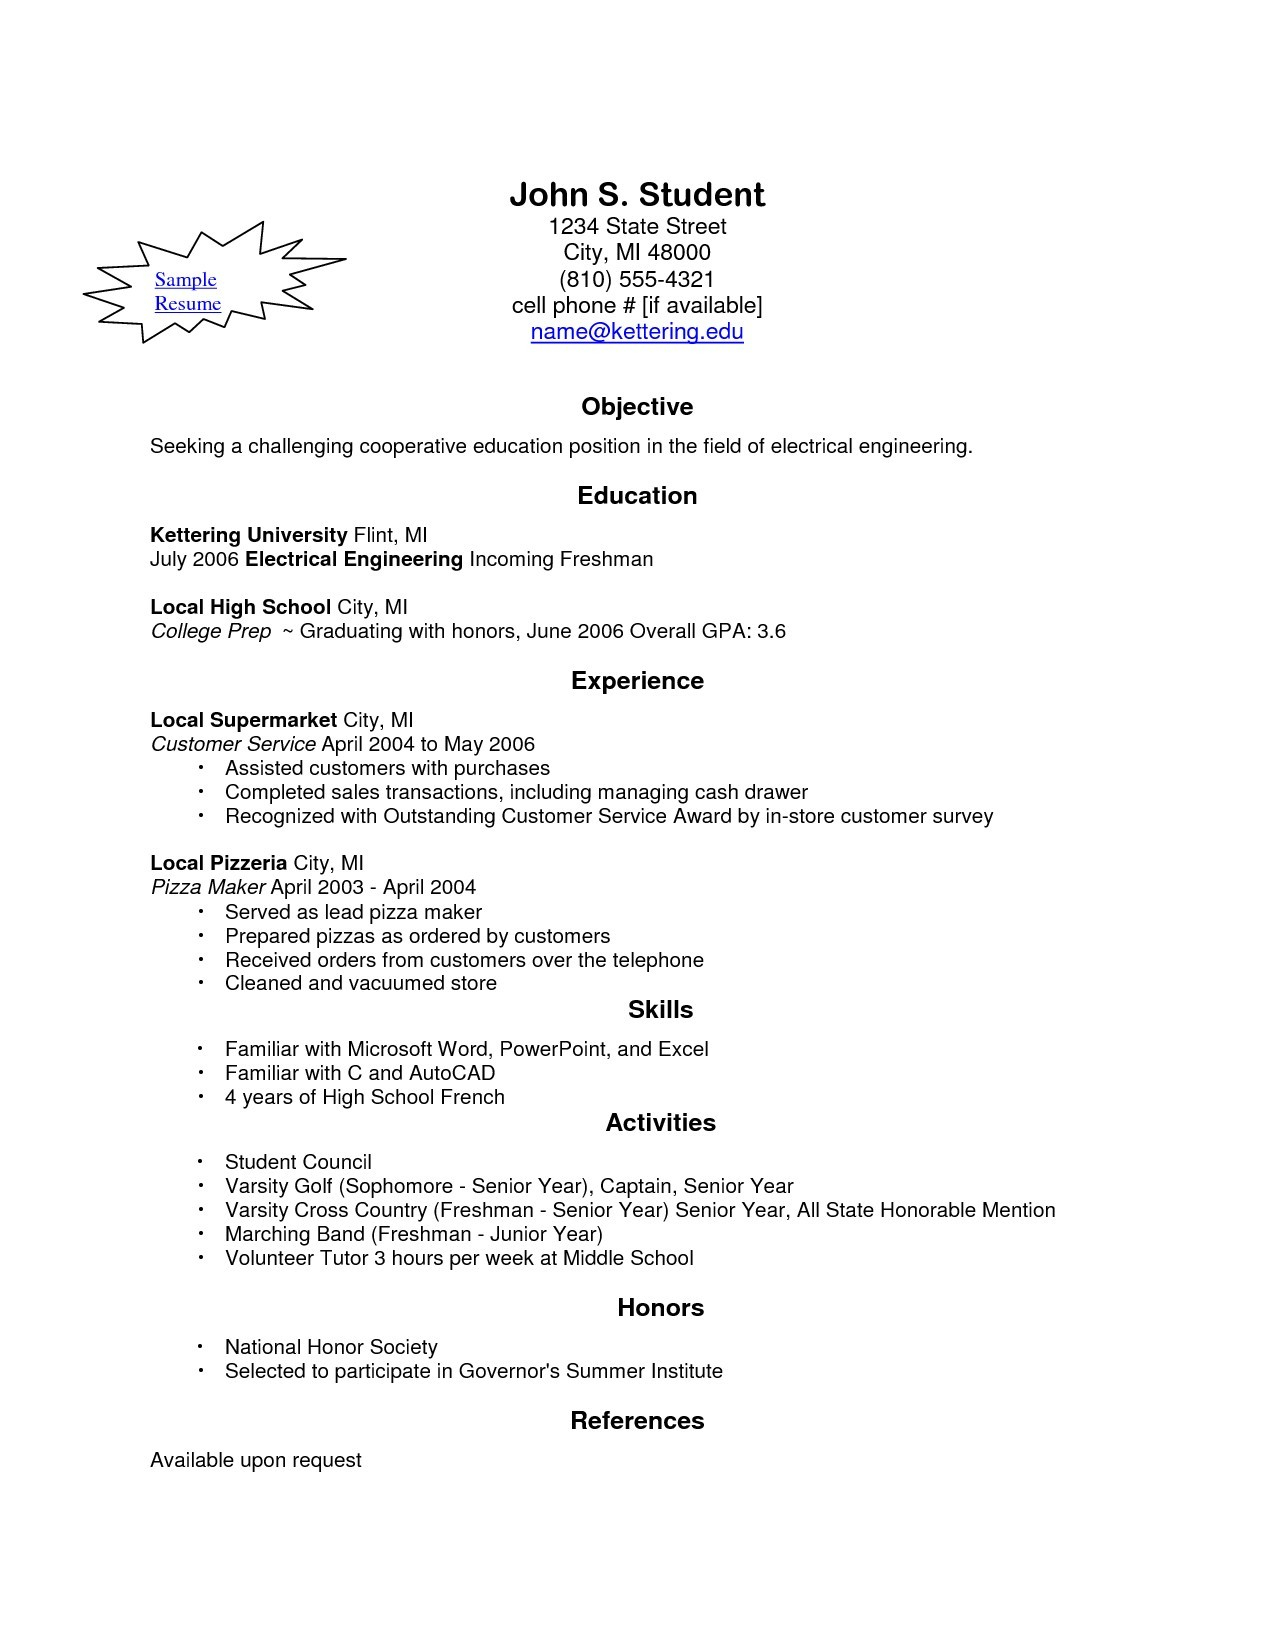 Resume Templates for Word - Free Line Resume Templates Word Line Resume Builder Free Luxury